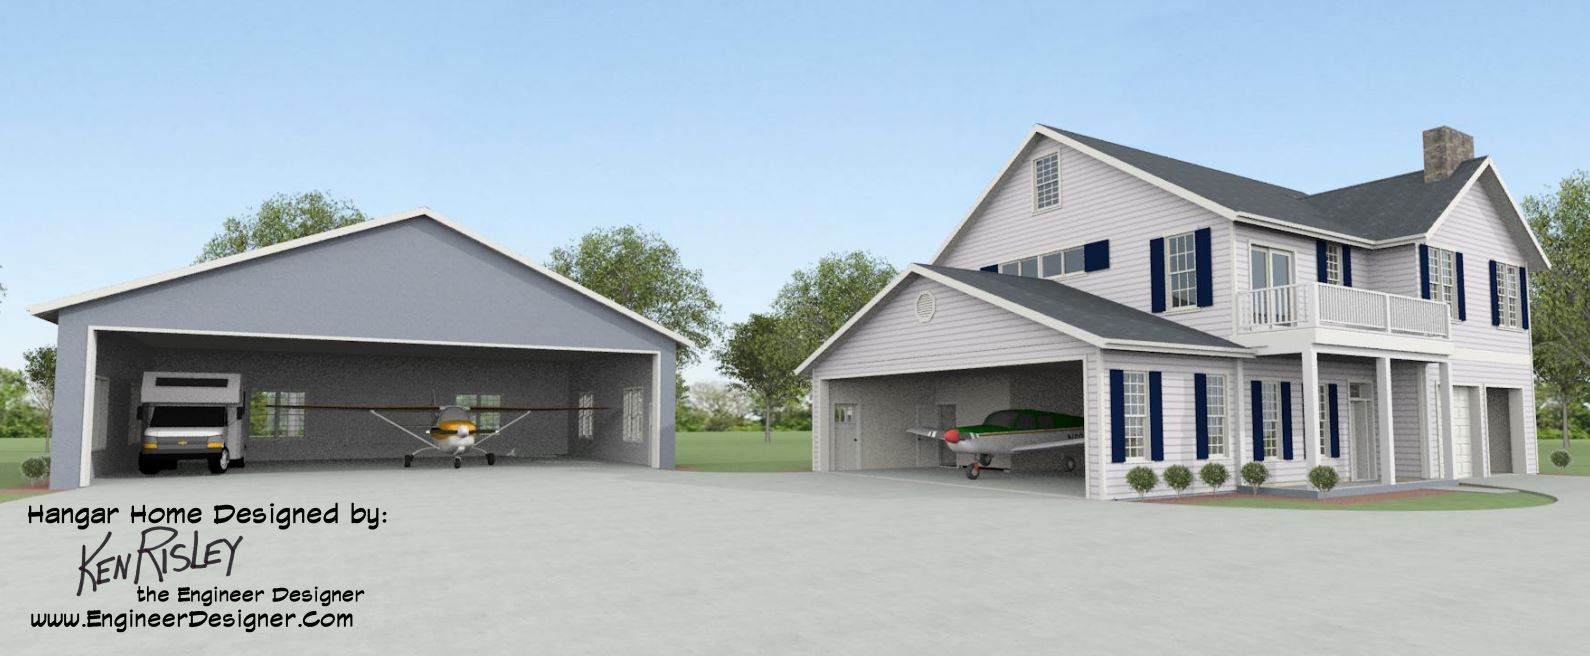 when considering a hangar home design these points should